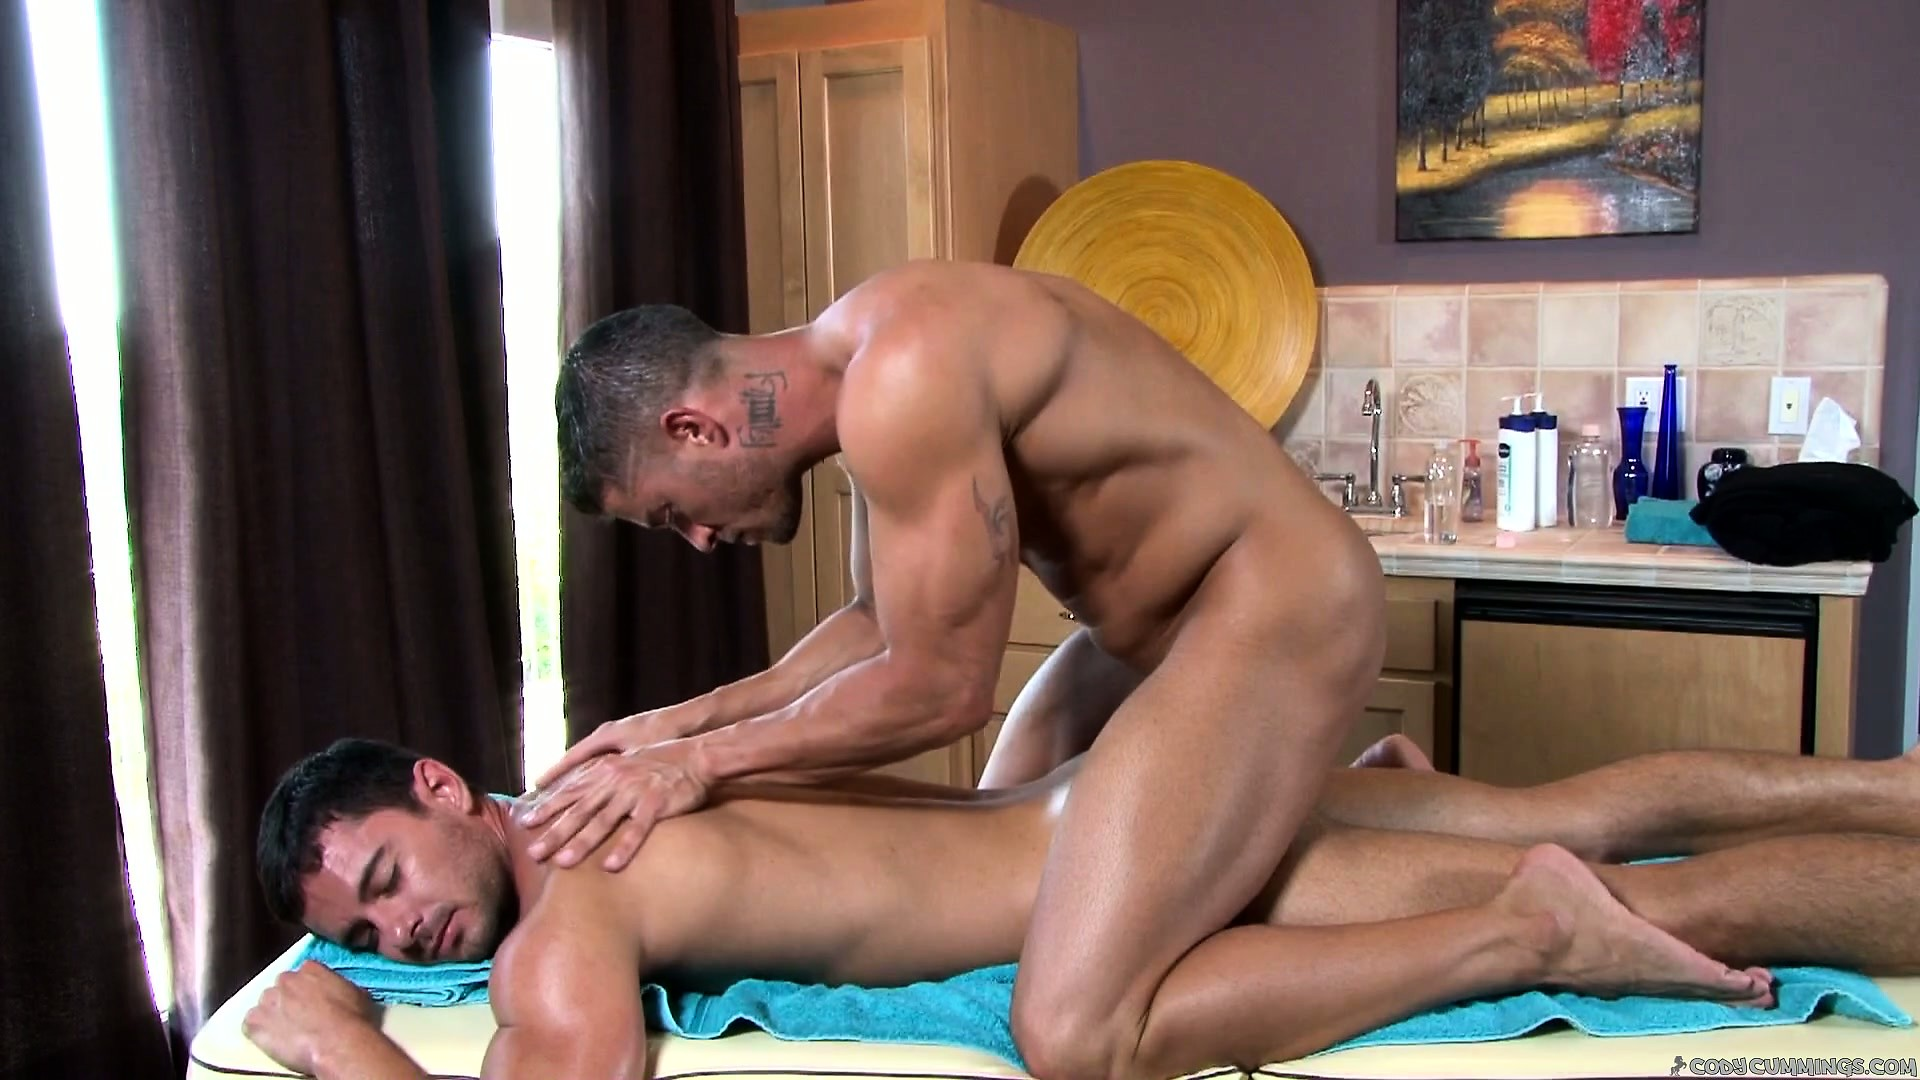 Porn Tube of The Master Masseur Works His Magic On His New Clients Stiff Muscles